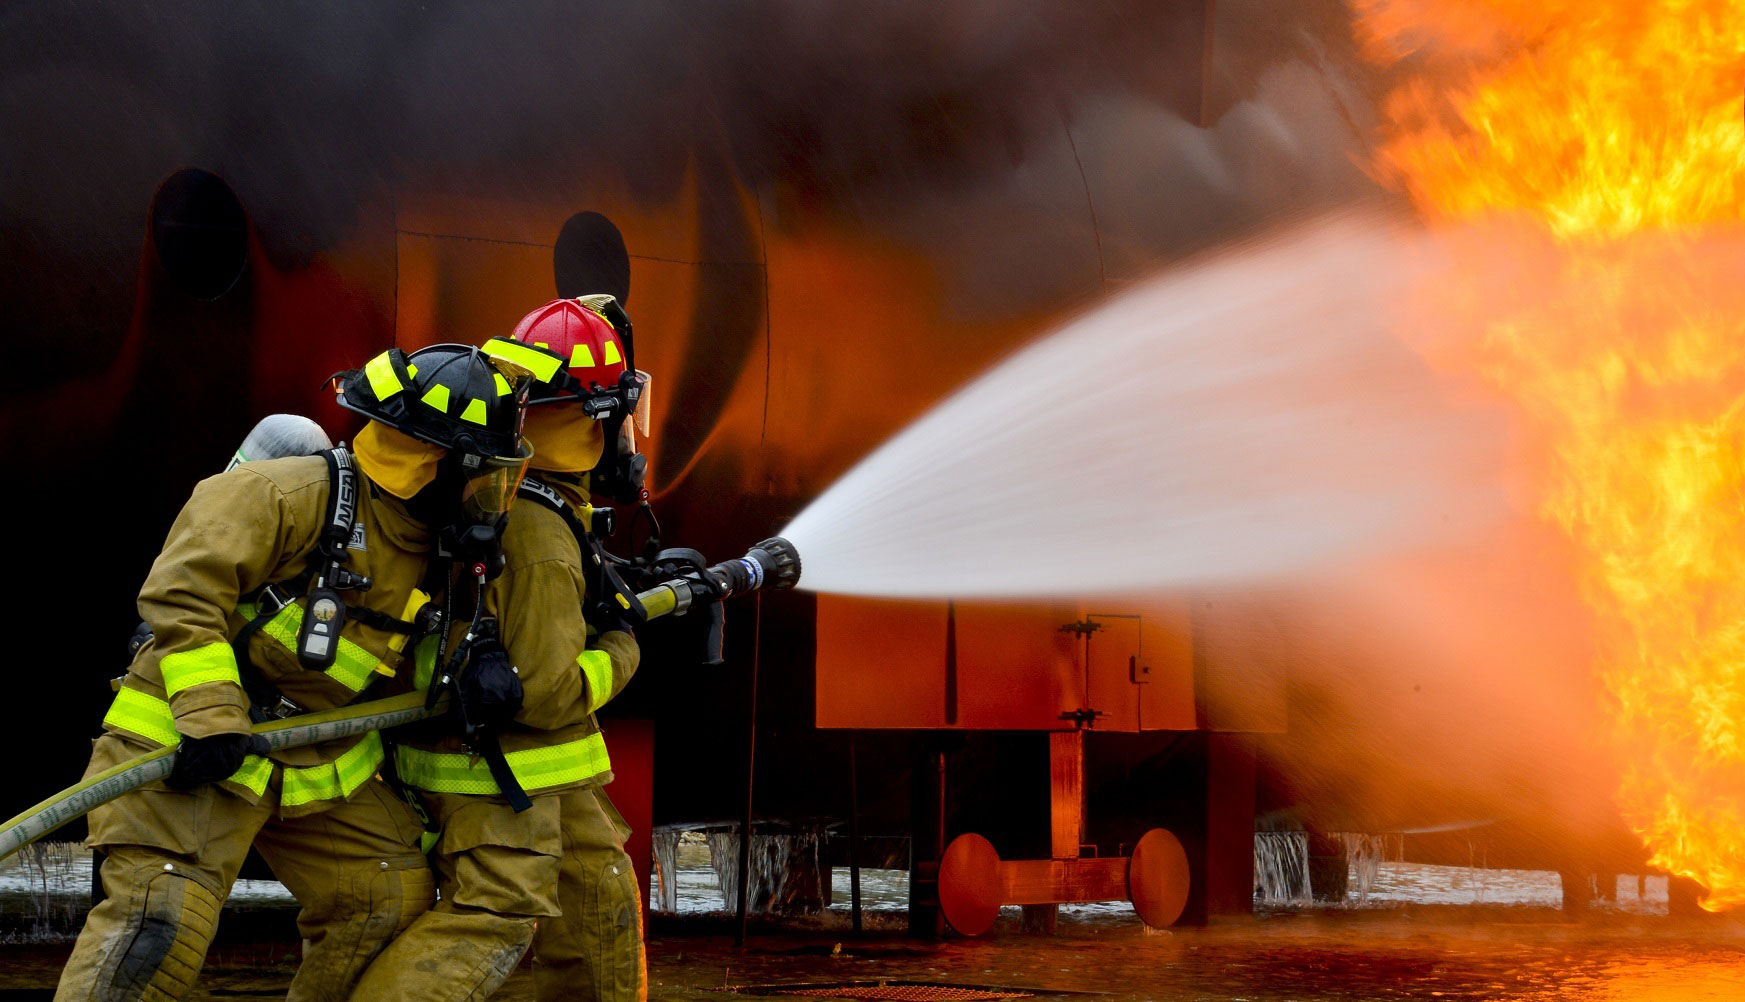 Chemical And Engineering News >> Research Helps Firefighters Stay Safe - U of G News